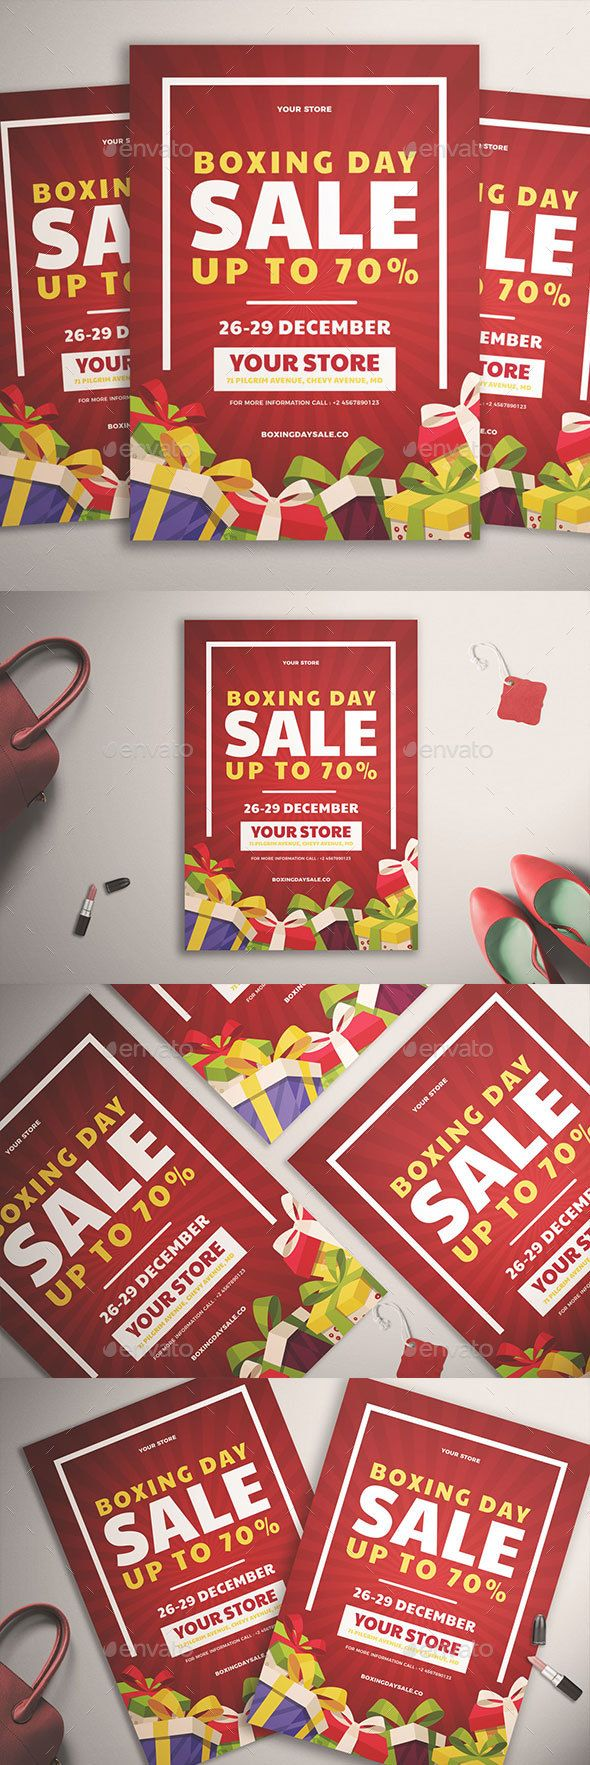 Boxing Day Sale Flyer Template PSD, AI #design